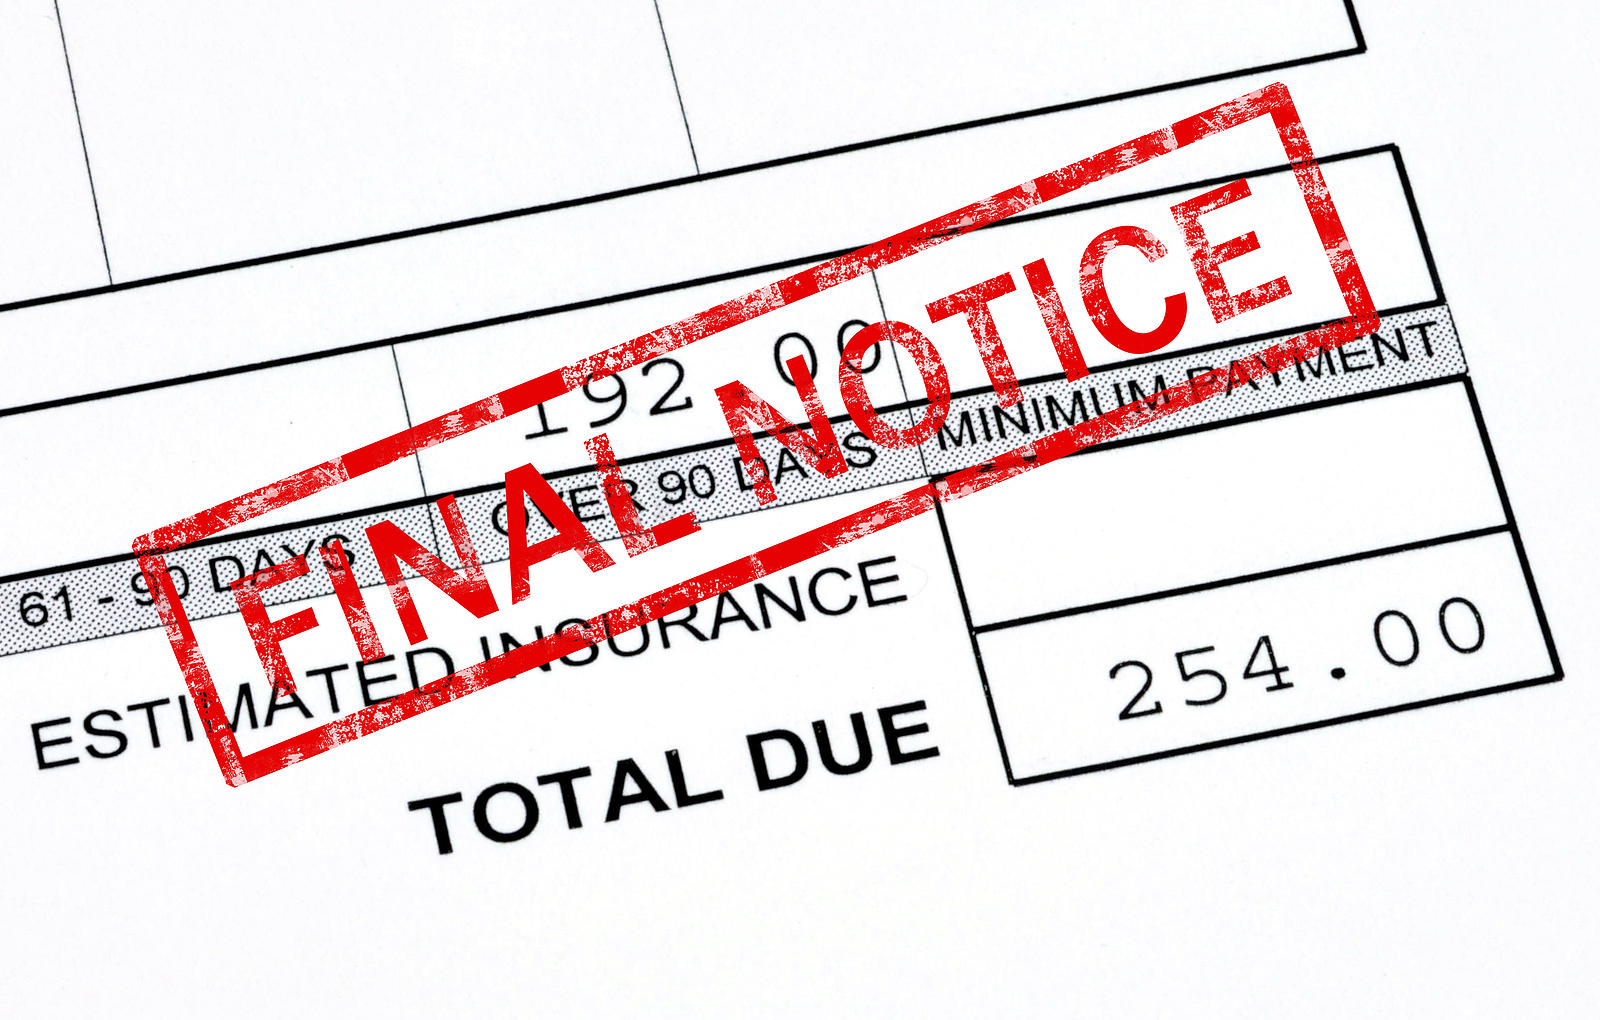 Debt Collection Agencies: Watch Out, Small Business Owners!